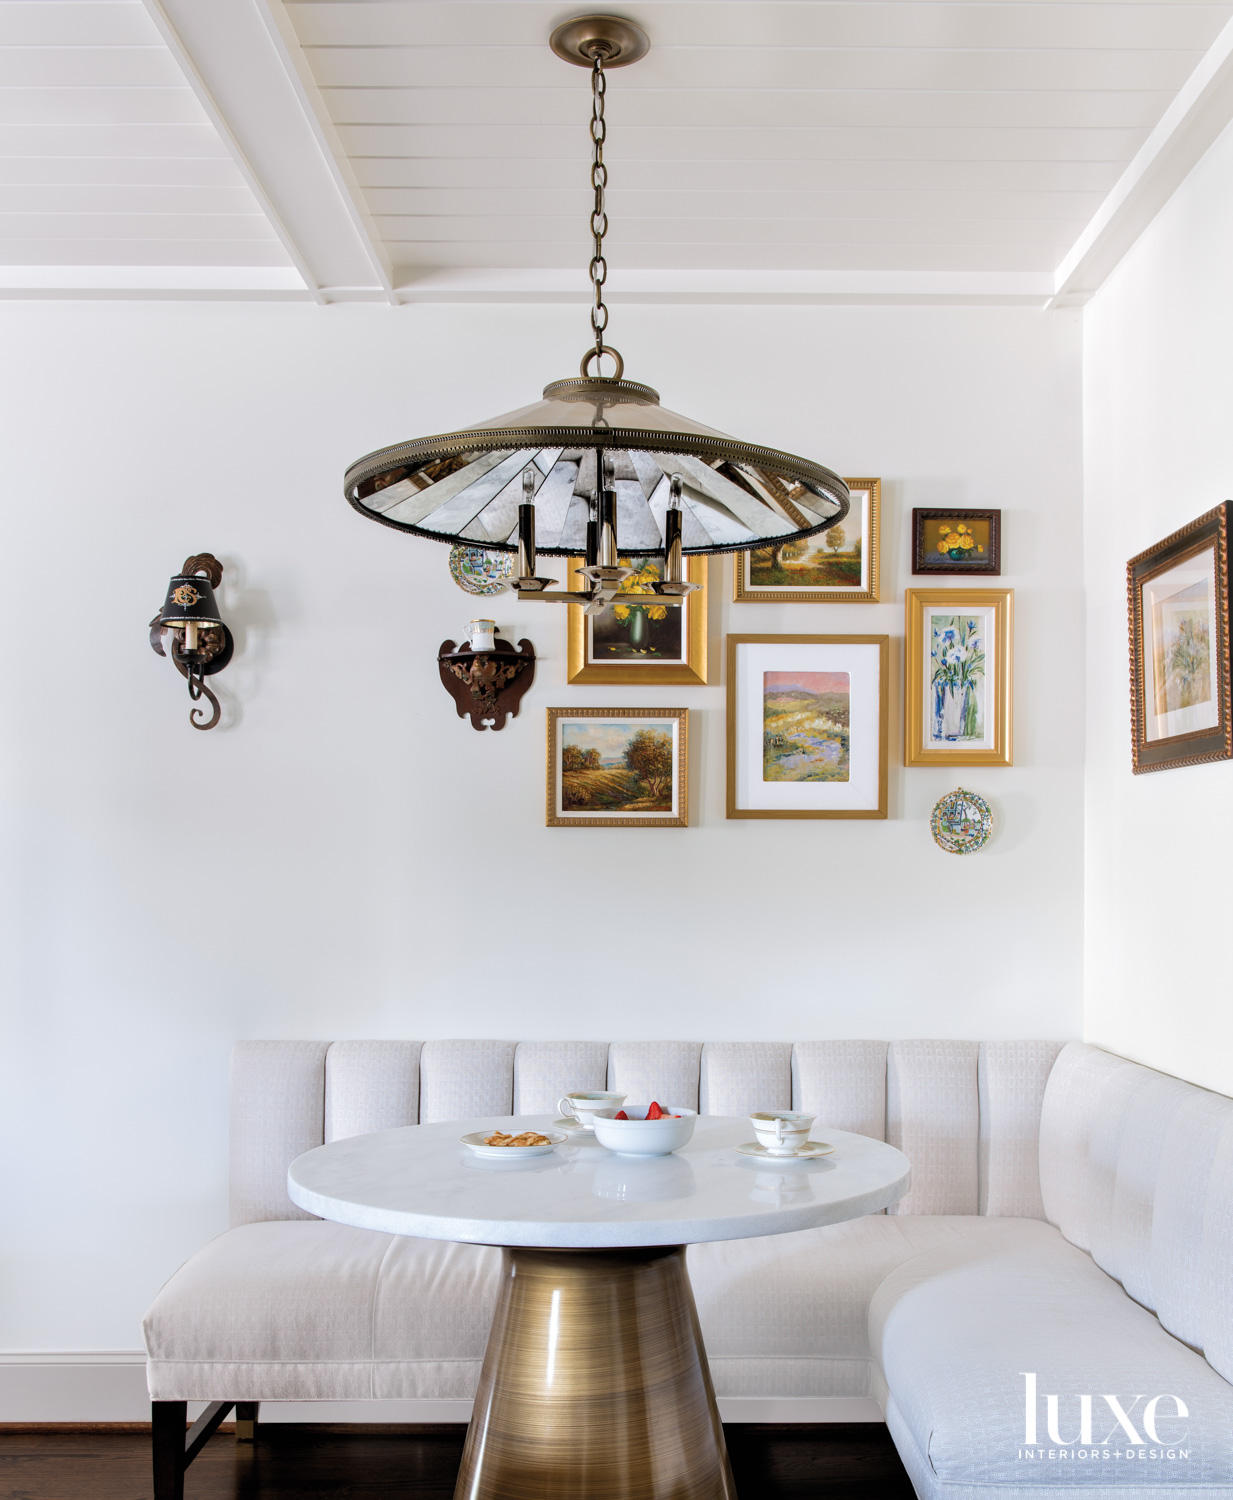 Banquette featuring a table on...